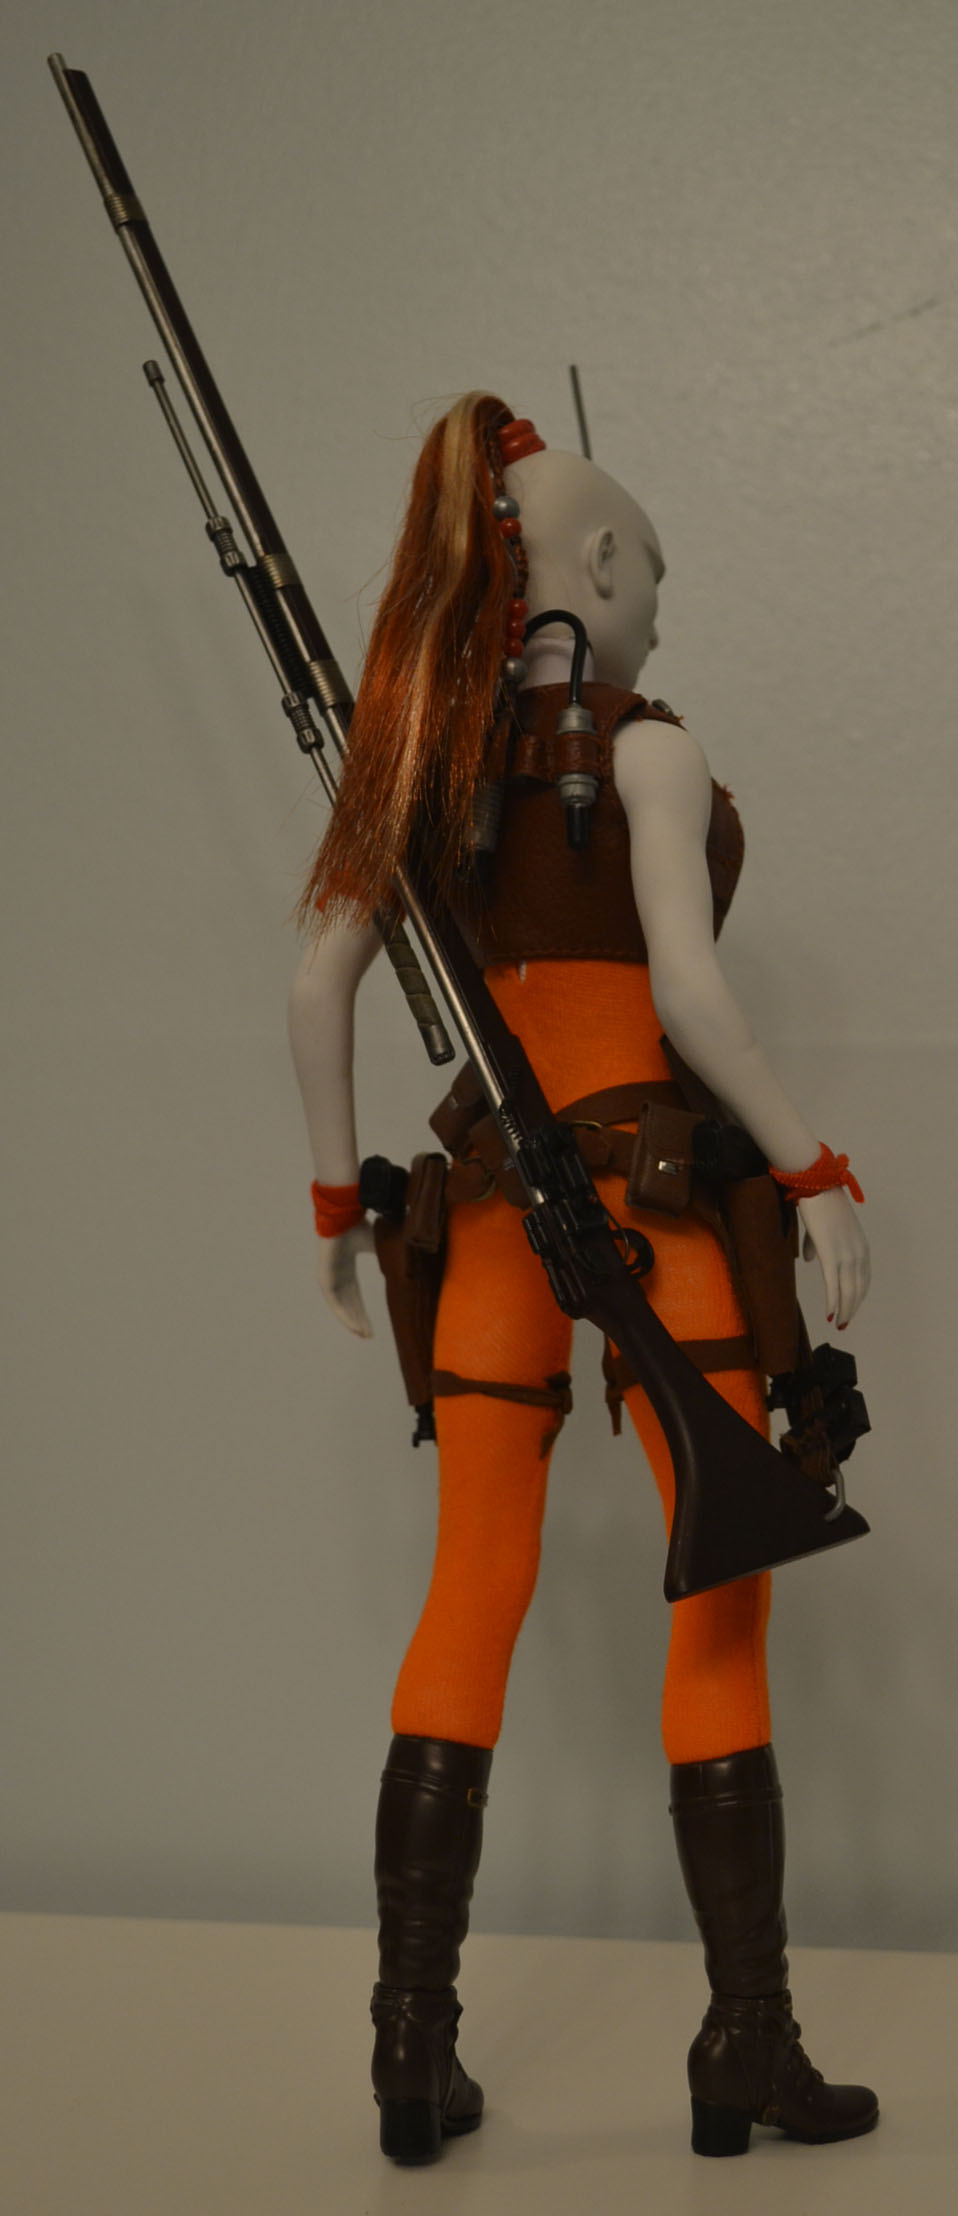 Custom/Kitbash: Aurra Sing - Star Wars Bounty Hunter (Episode I) _dsc3126